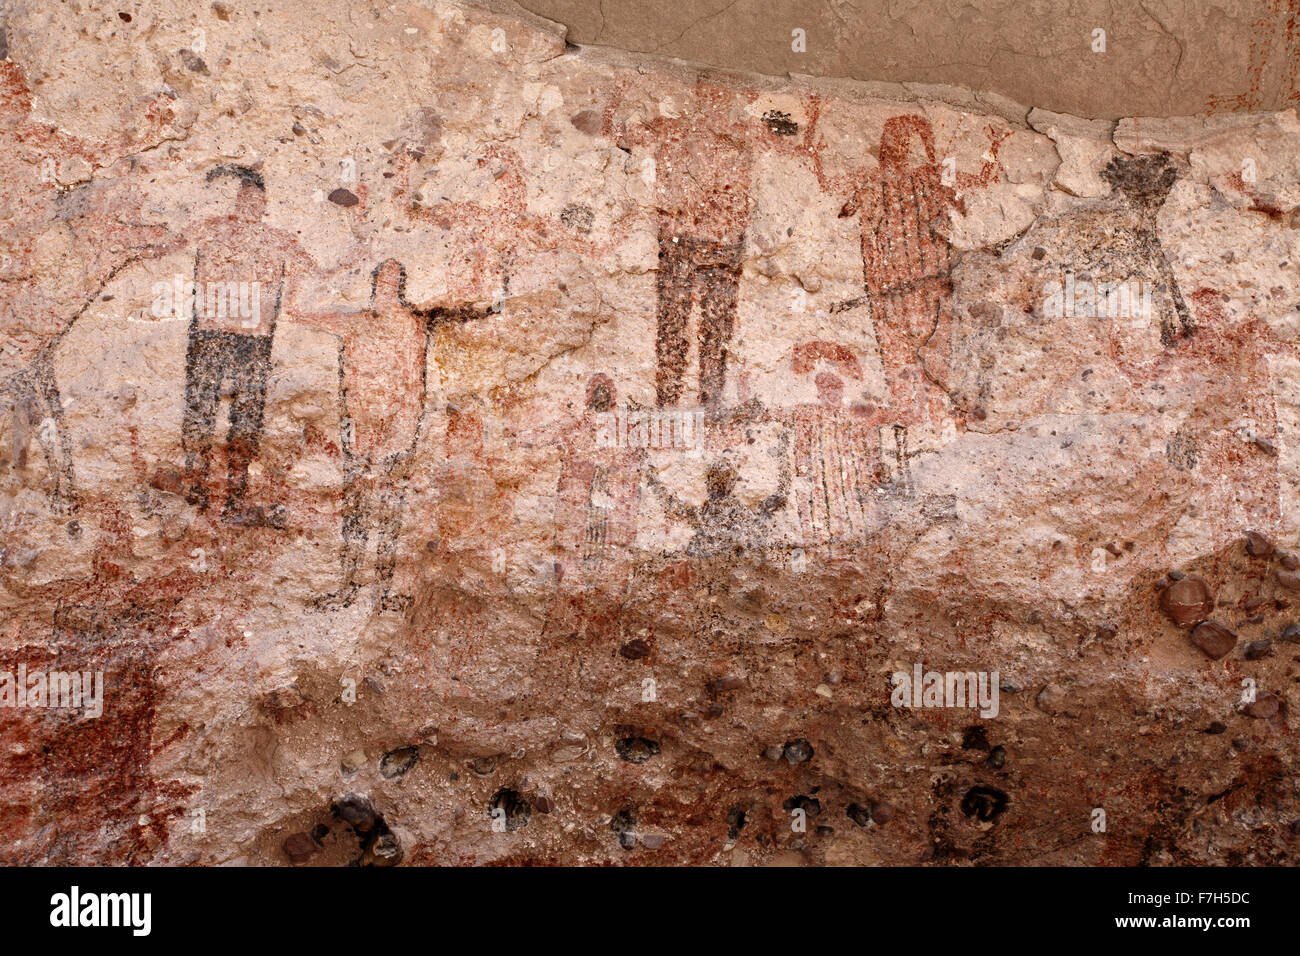 pr7174-D. petroglyphs and rock paintings of Santa Marta, which depict people, animals (deer, rabbits, fish, more). - Stock Image